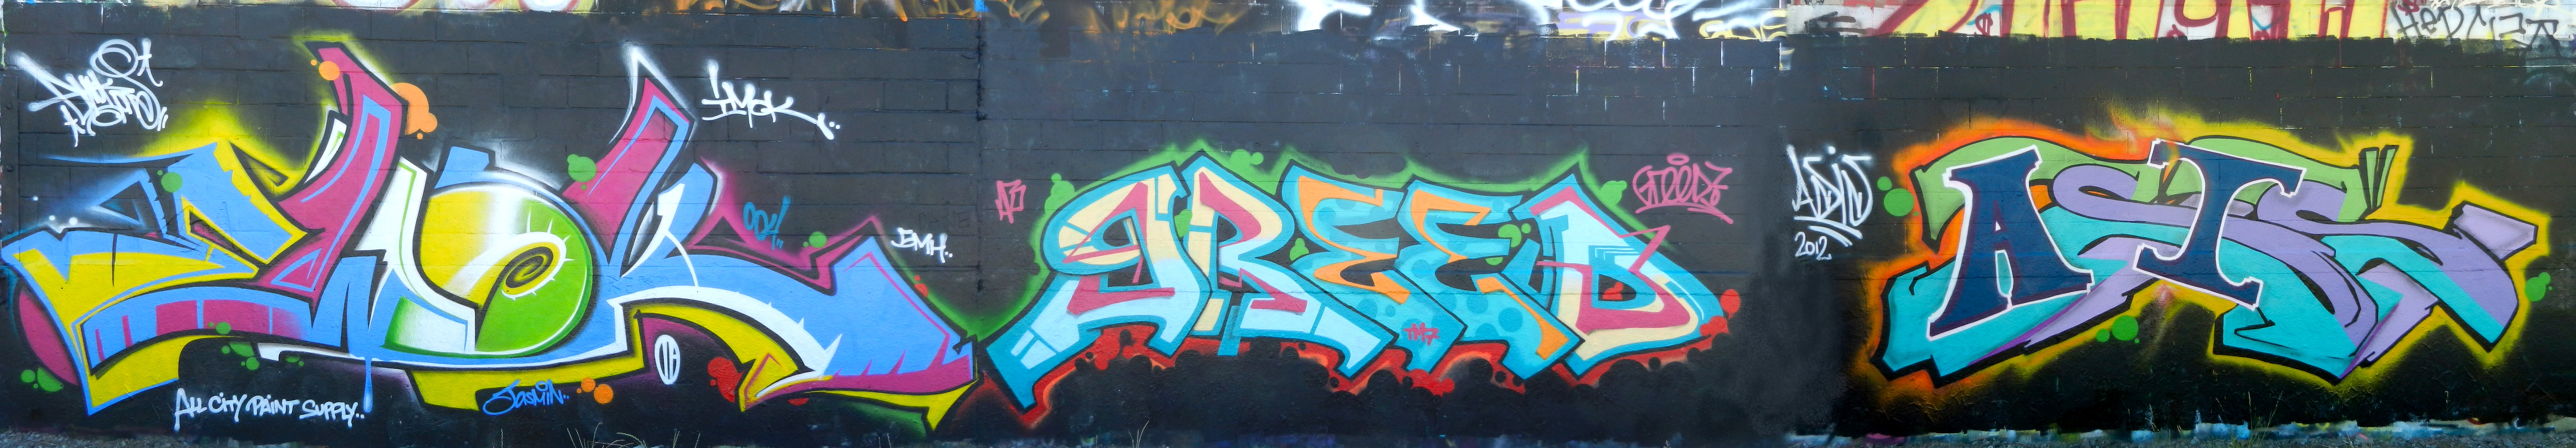 Ewok, Greed, Asis on the former Seattle SODO wall 2012.